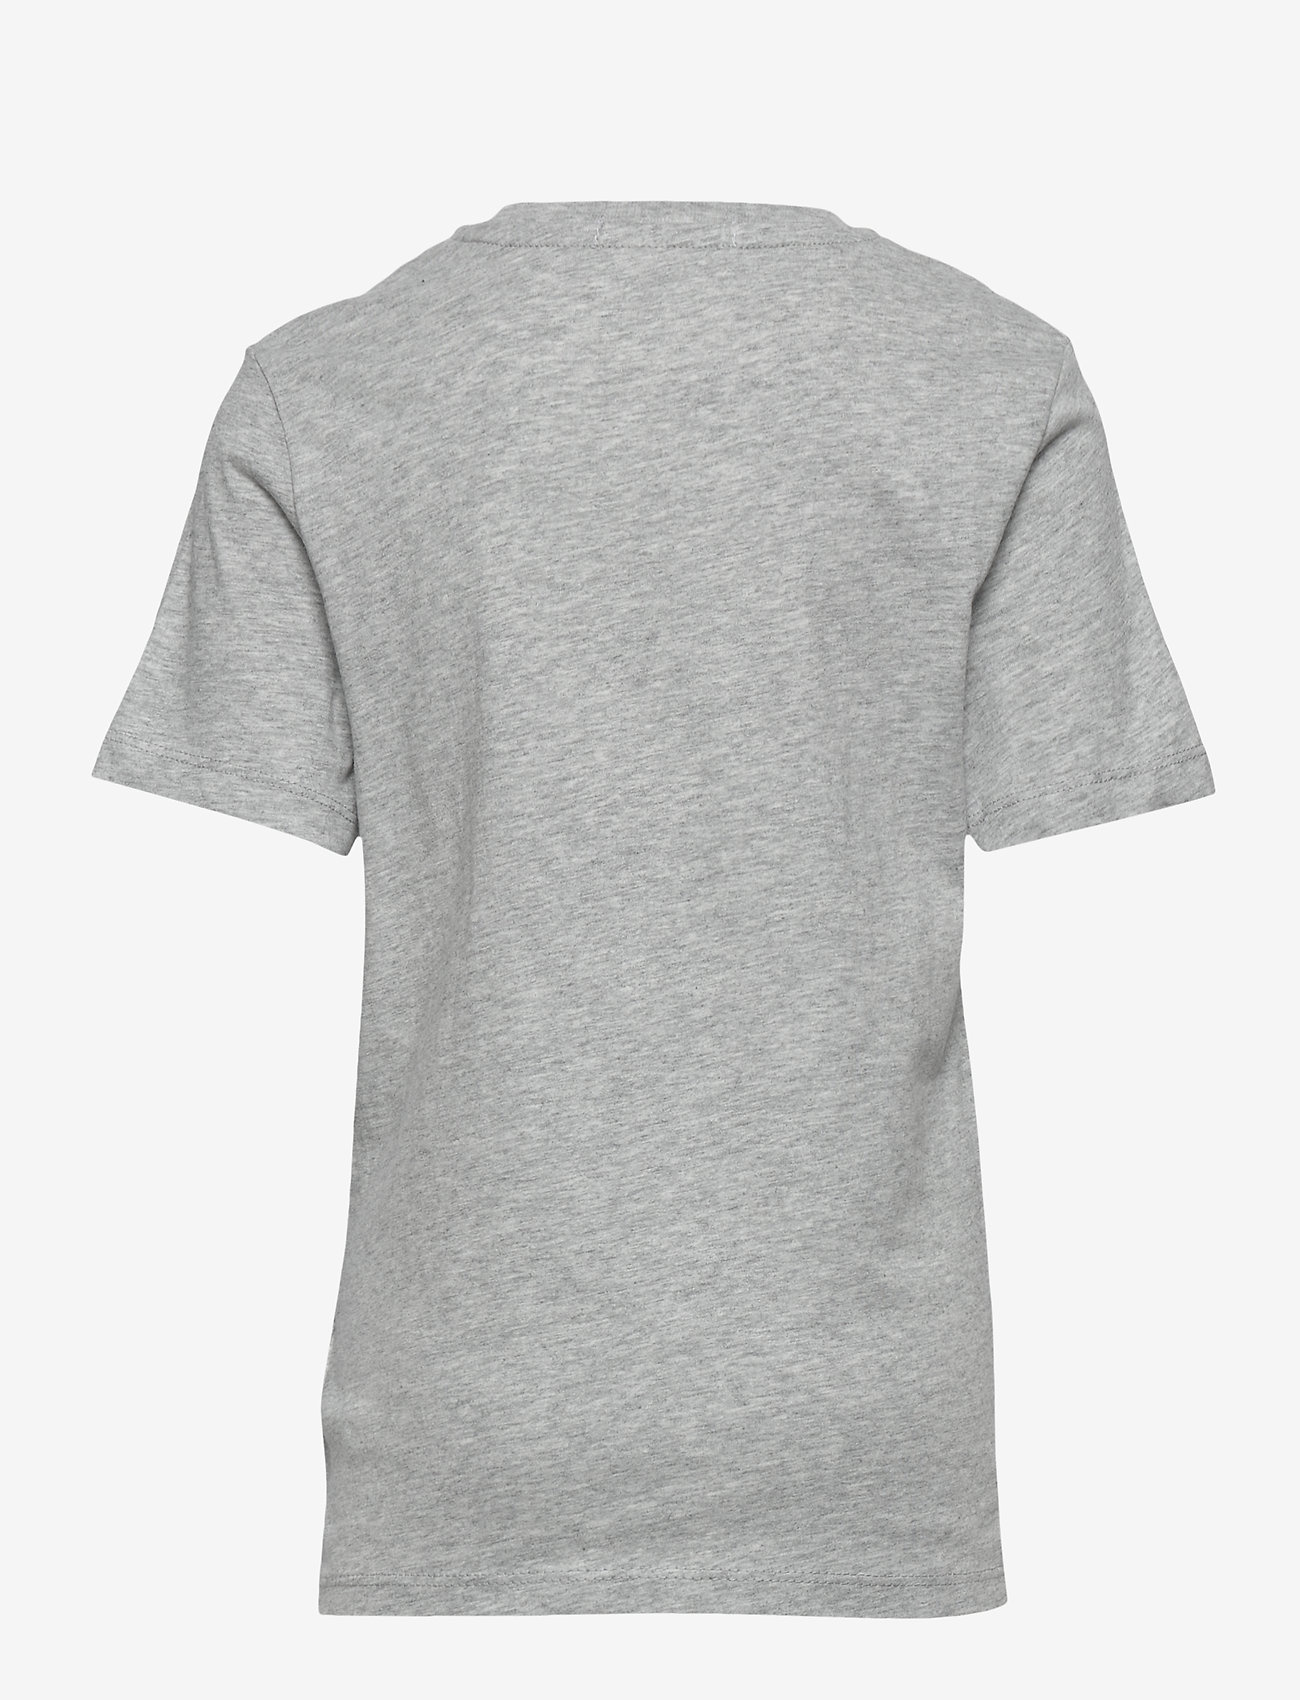 Calvin Klein - MONOGRAM POCKET TOP - korte mouwen - light grey heather - 1